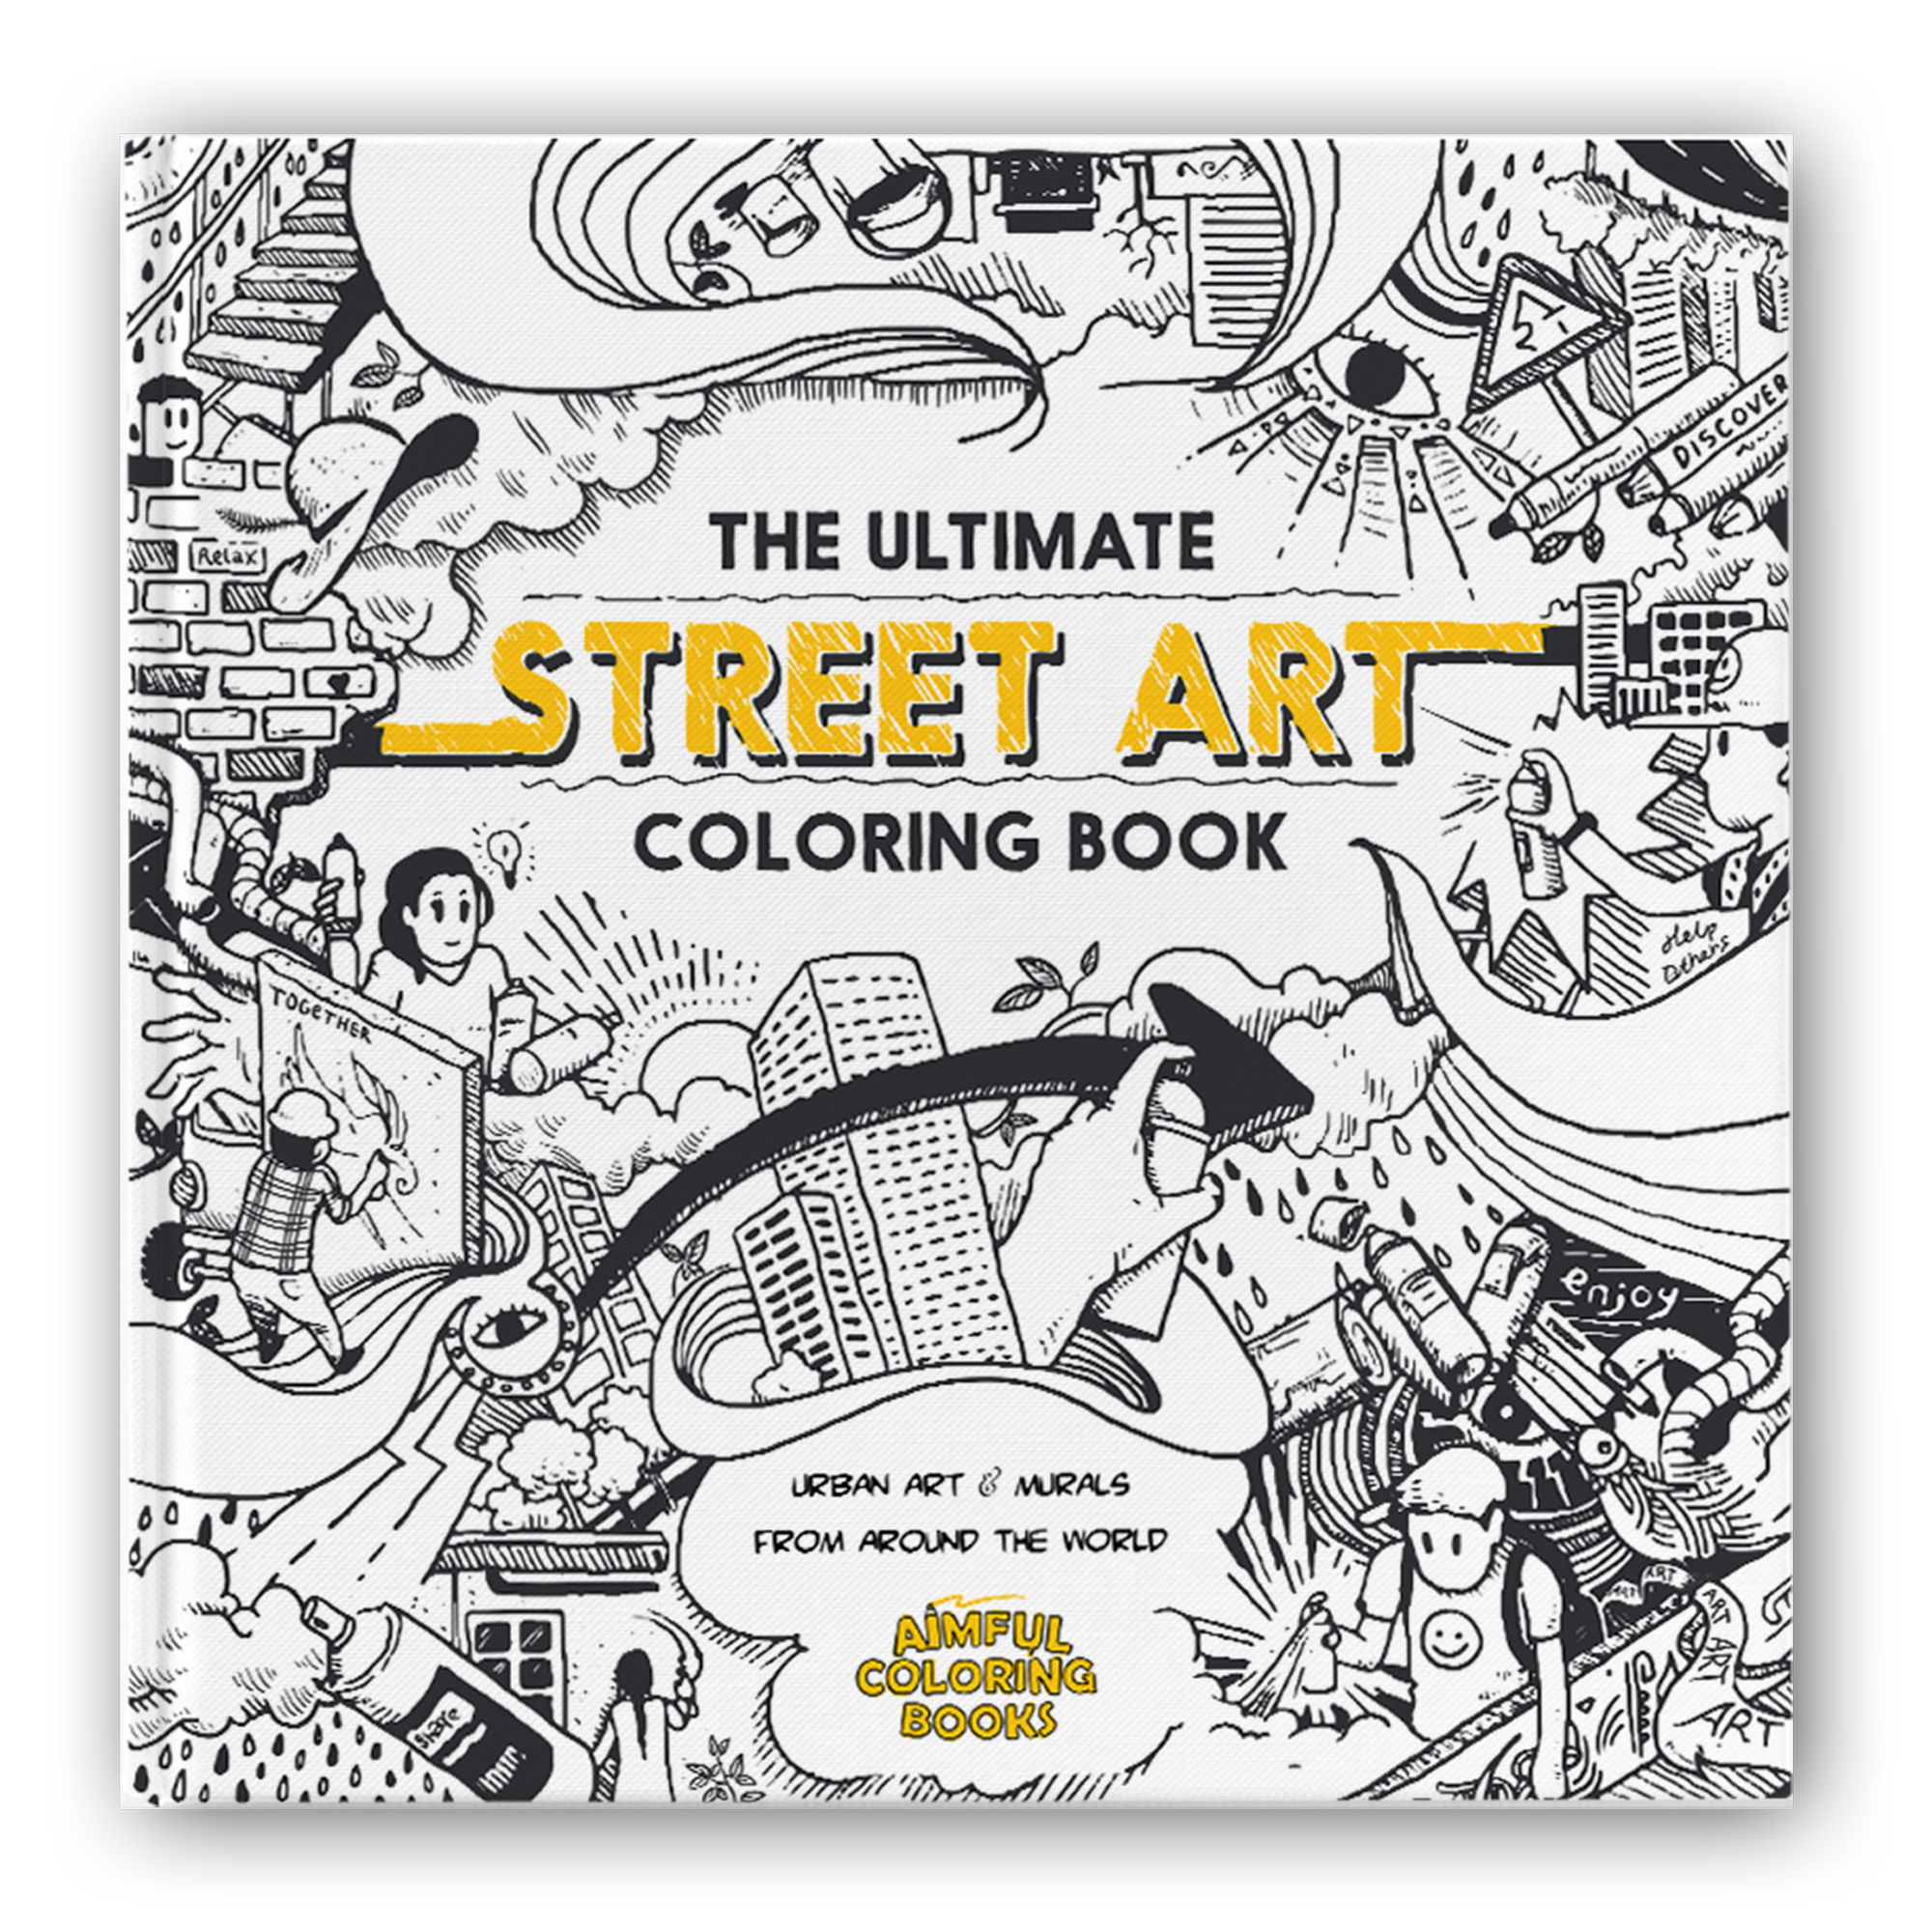 Win A Copy Of The Ultimate Street Art Coloring Book Coloring Books Street Art Books